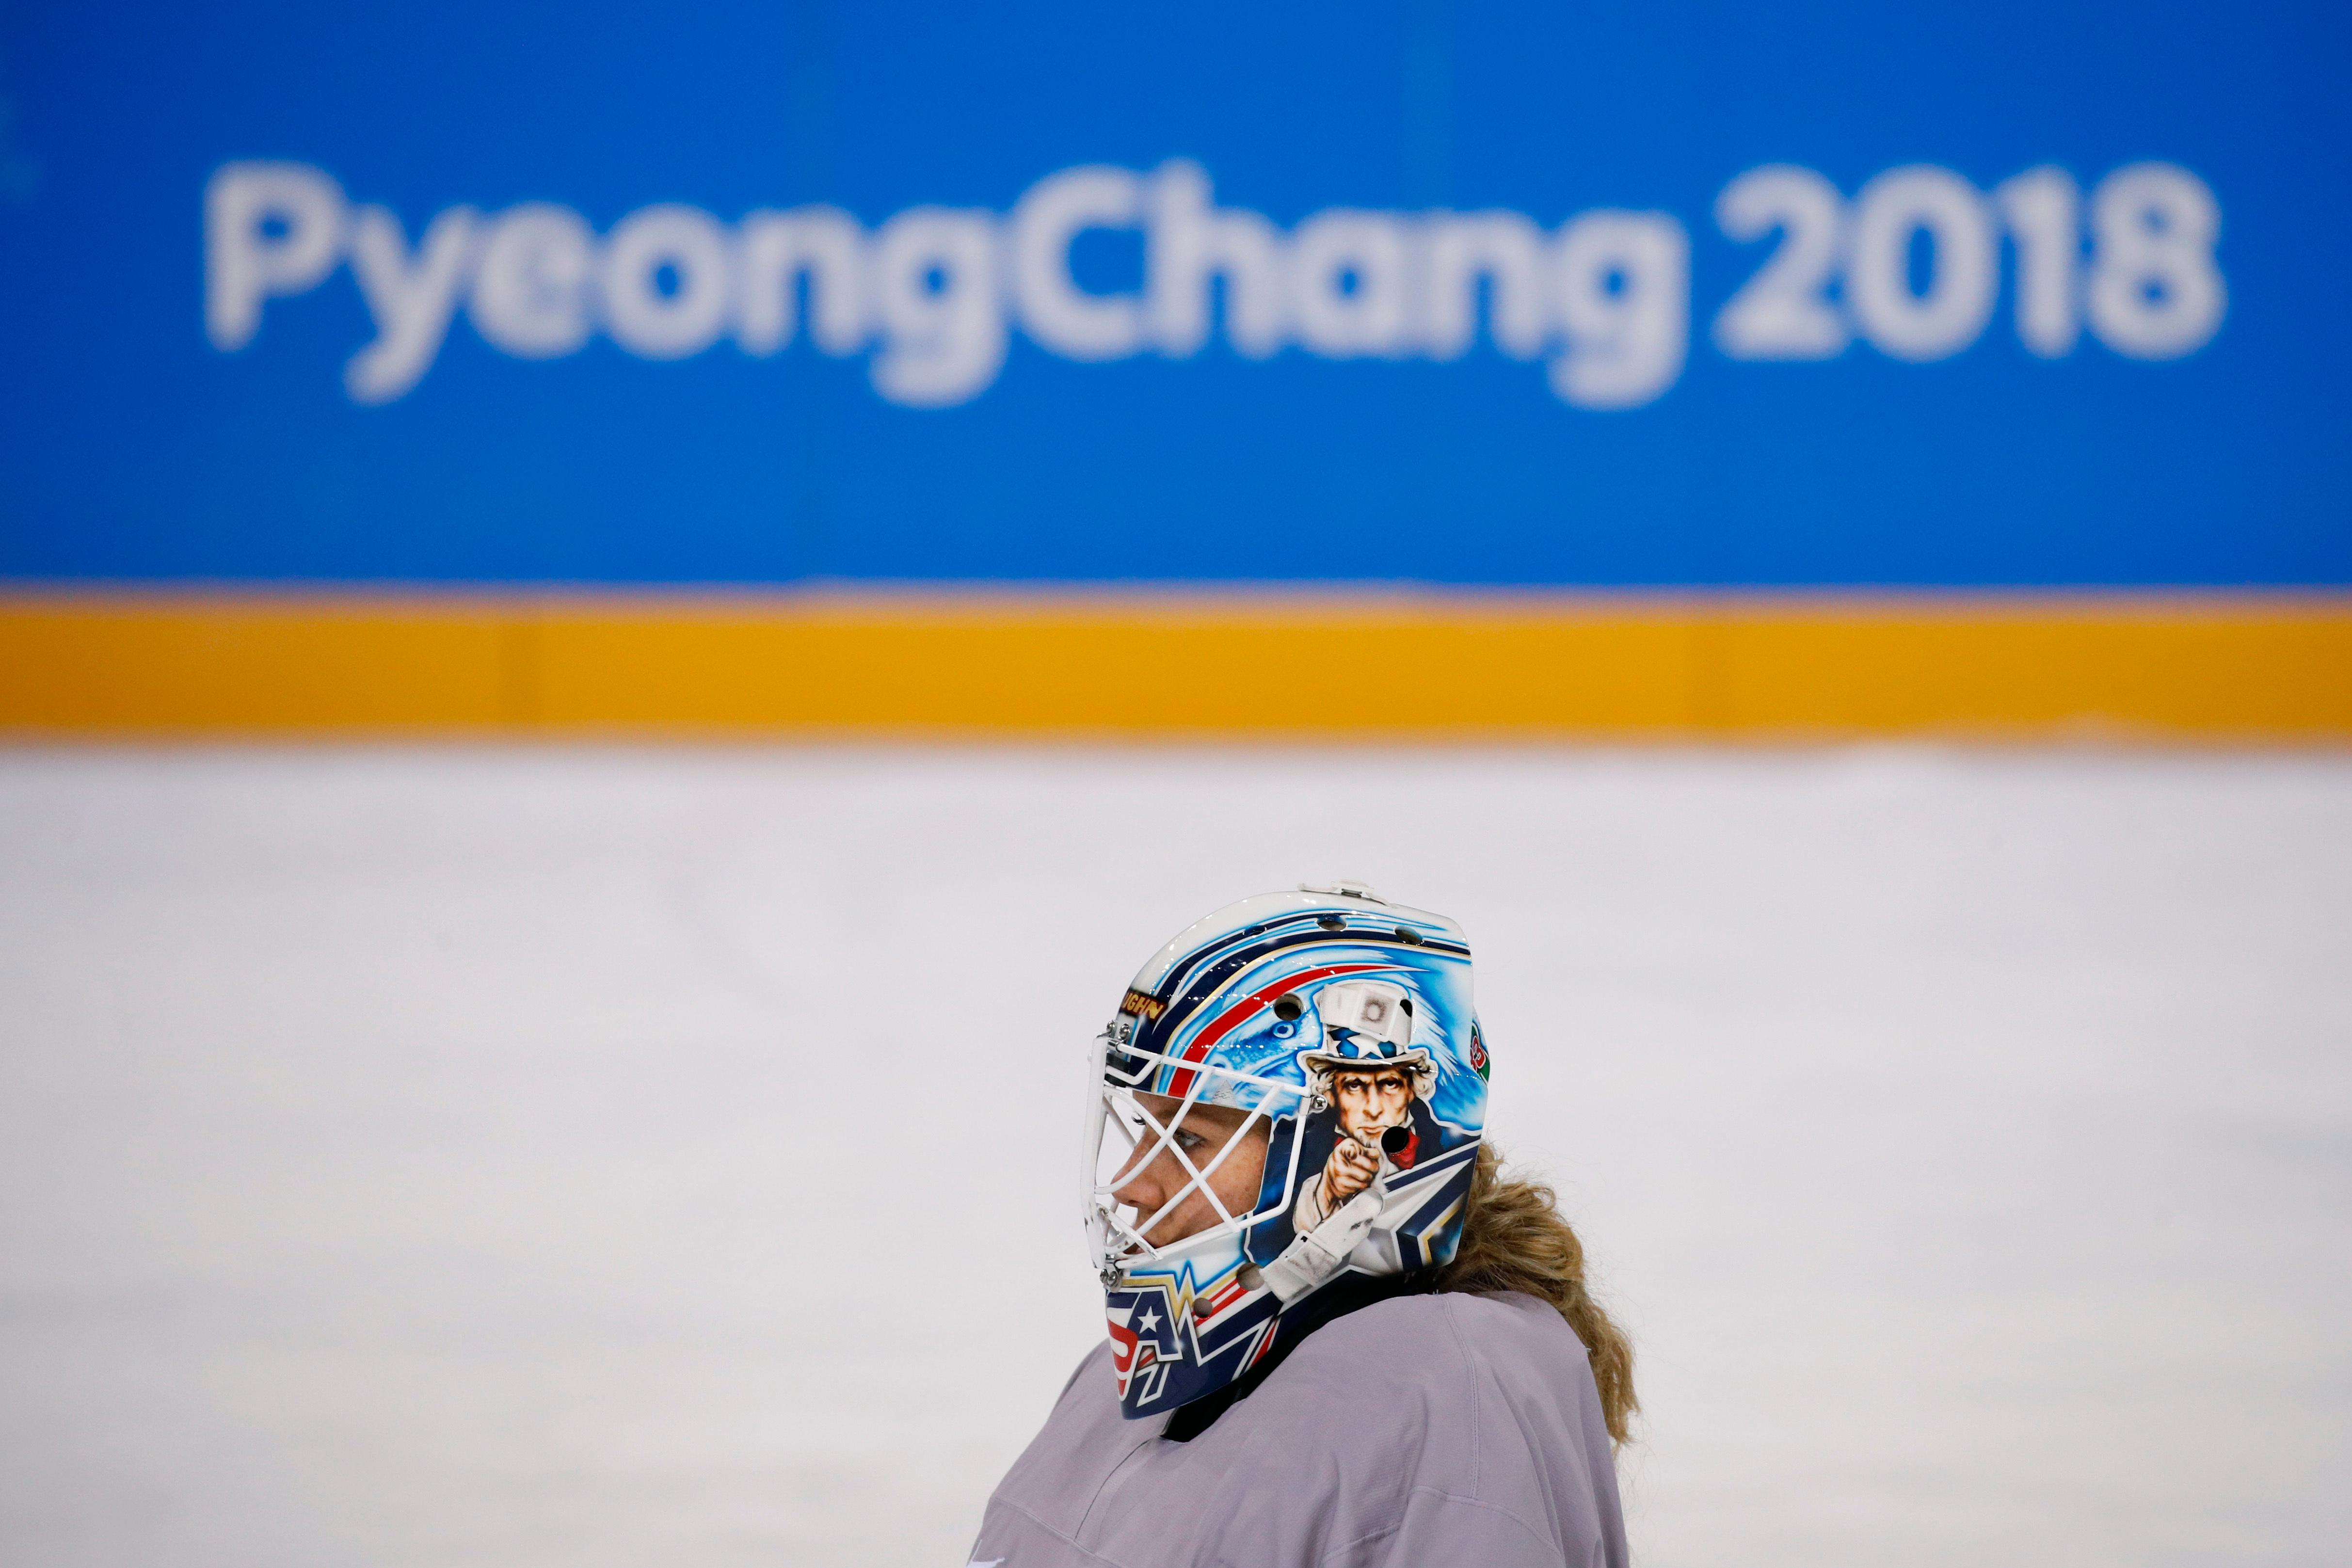 United States goalie Alex Rigsby skates on the ice during a training session prior to the 2018 Winter Olympics in Gangneung, South Korea, Sunday, Feb. 4, 2018. (AP Photo/Jae C. Hong)